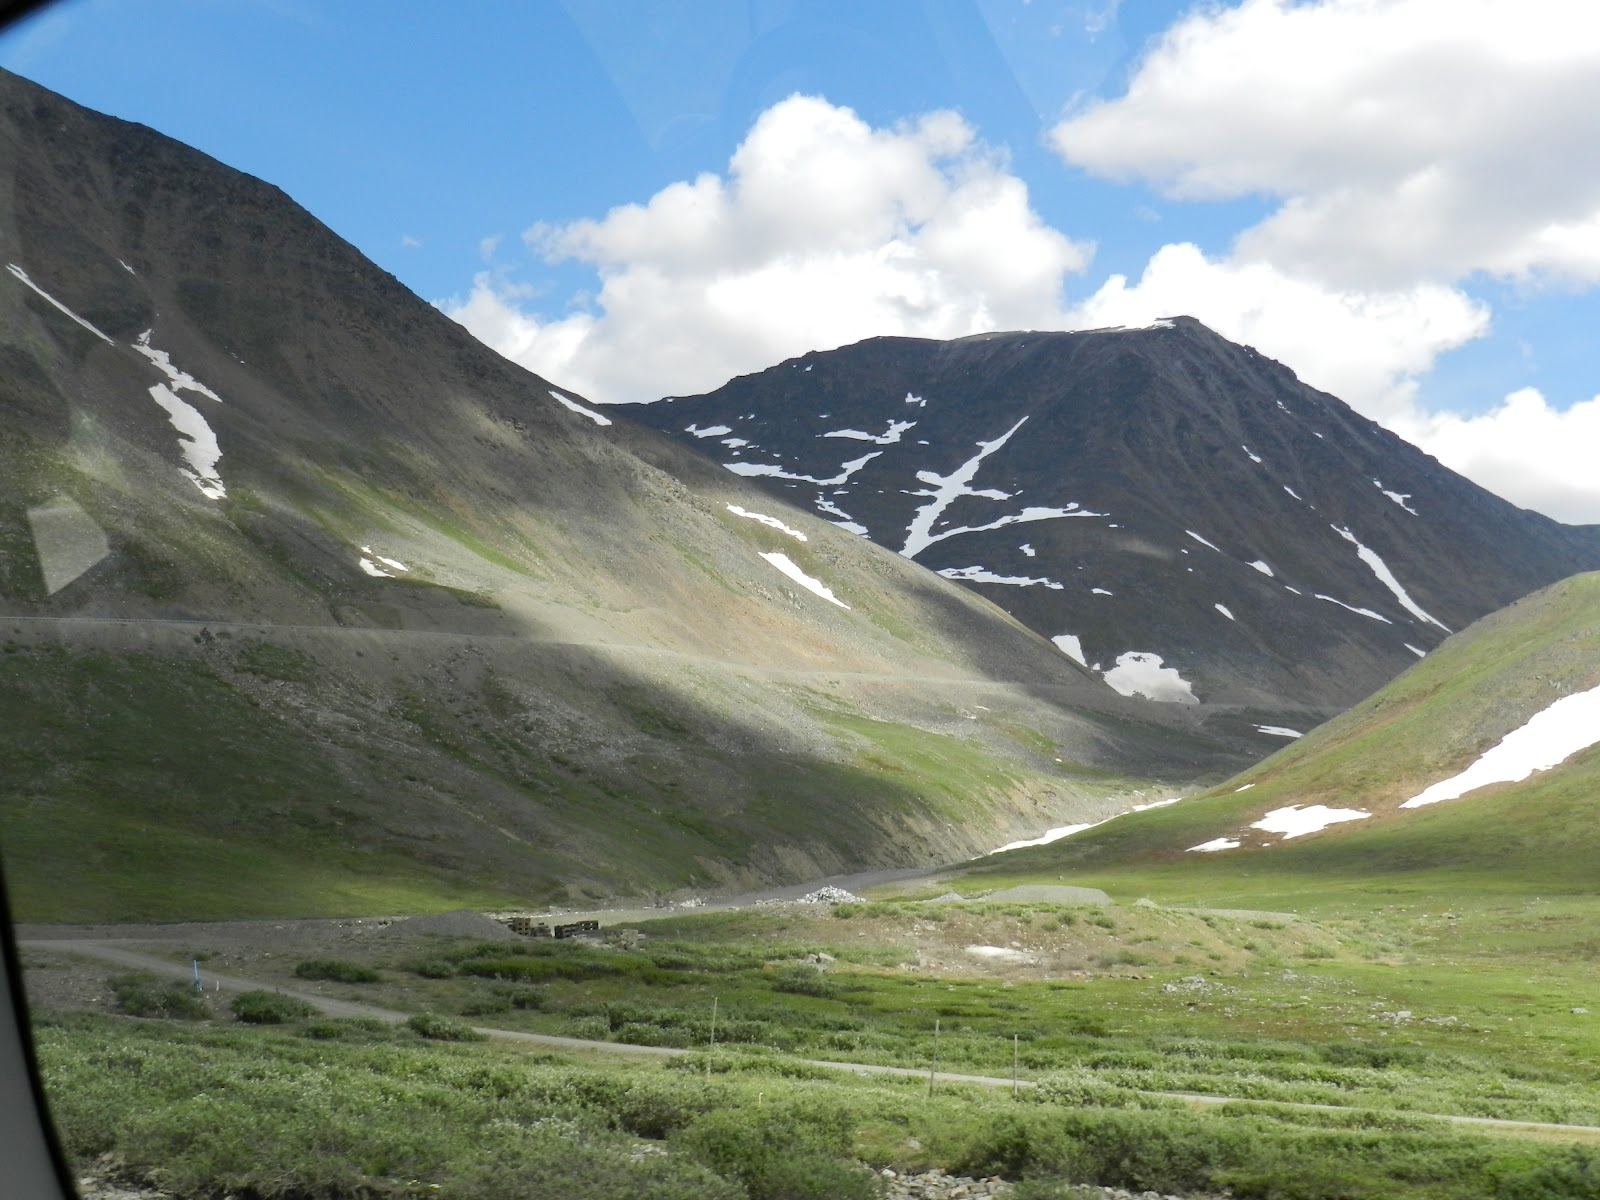 Anita S Adventures 2012 June 19 On To Deadhorse Alaska